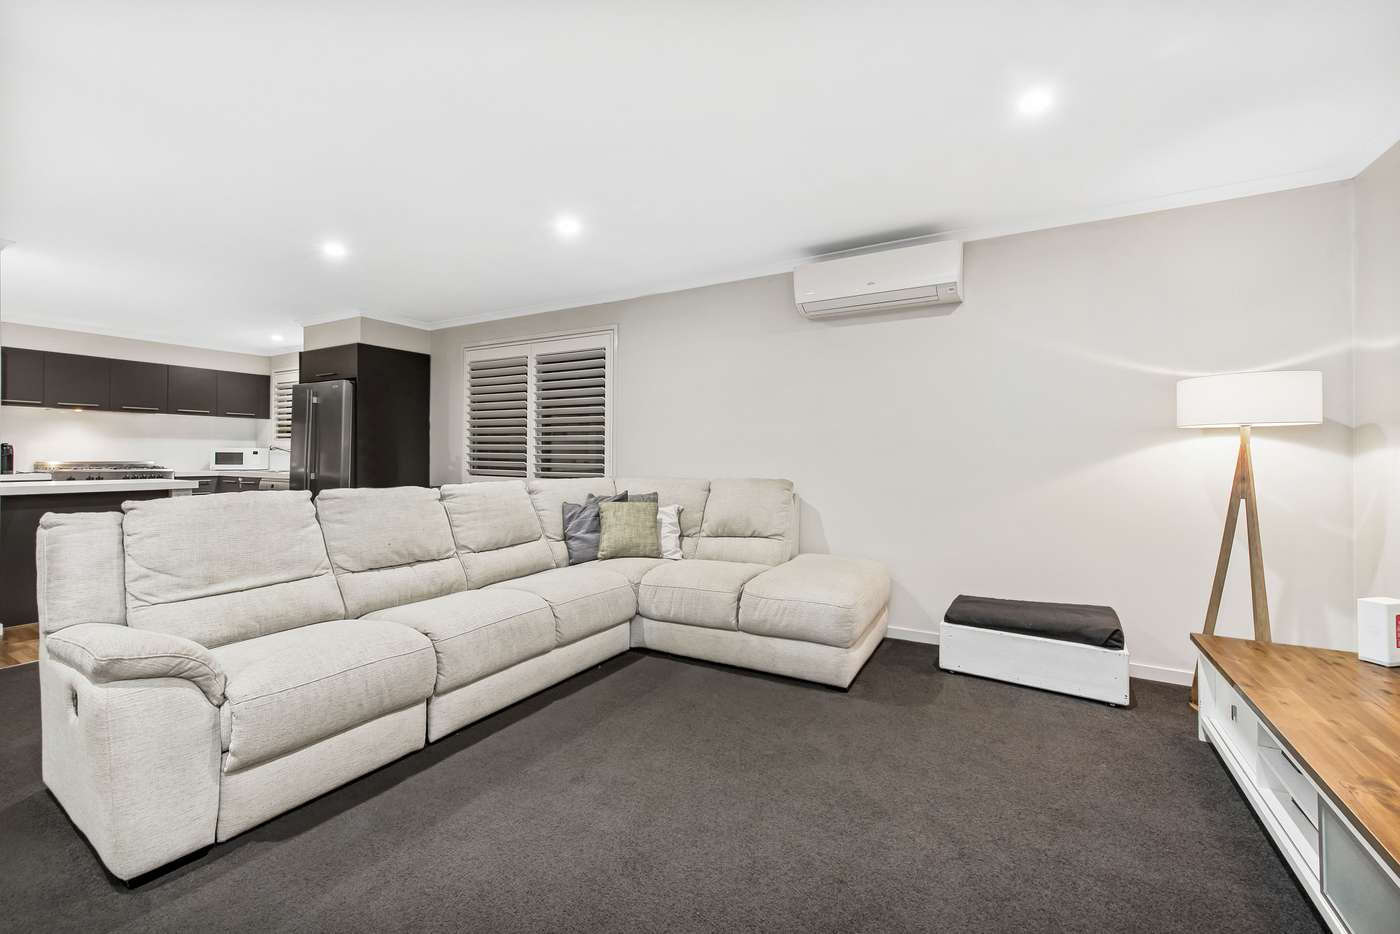 Seventh view of Homely house listing, 103 Mansfield Street, Berwick VIC 3806